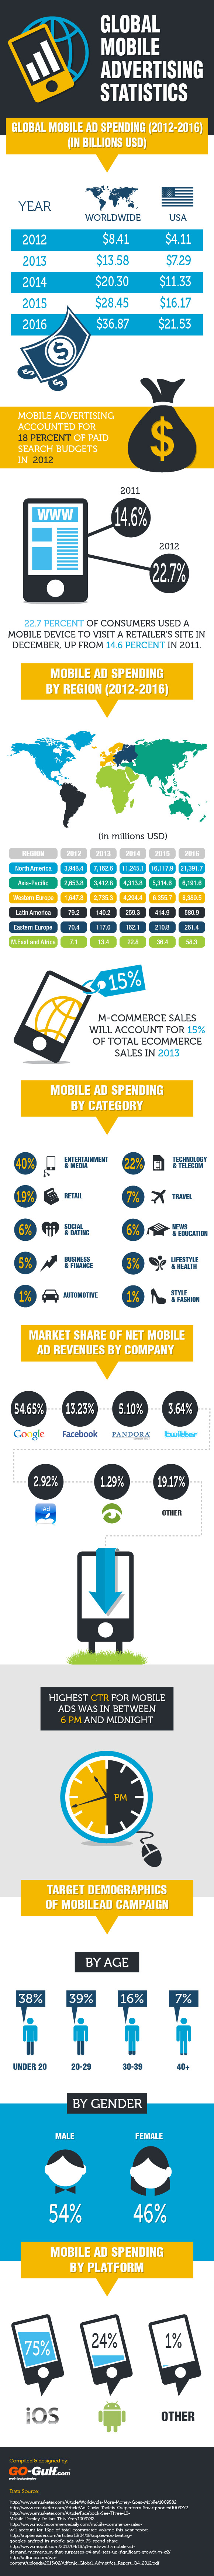 Global Mobile Advertising - Statistics and Trends